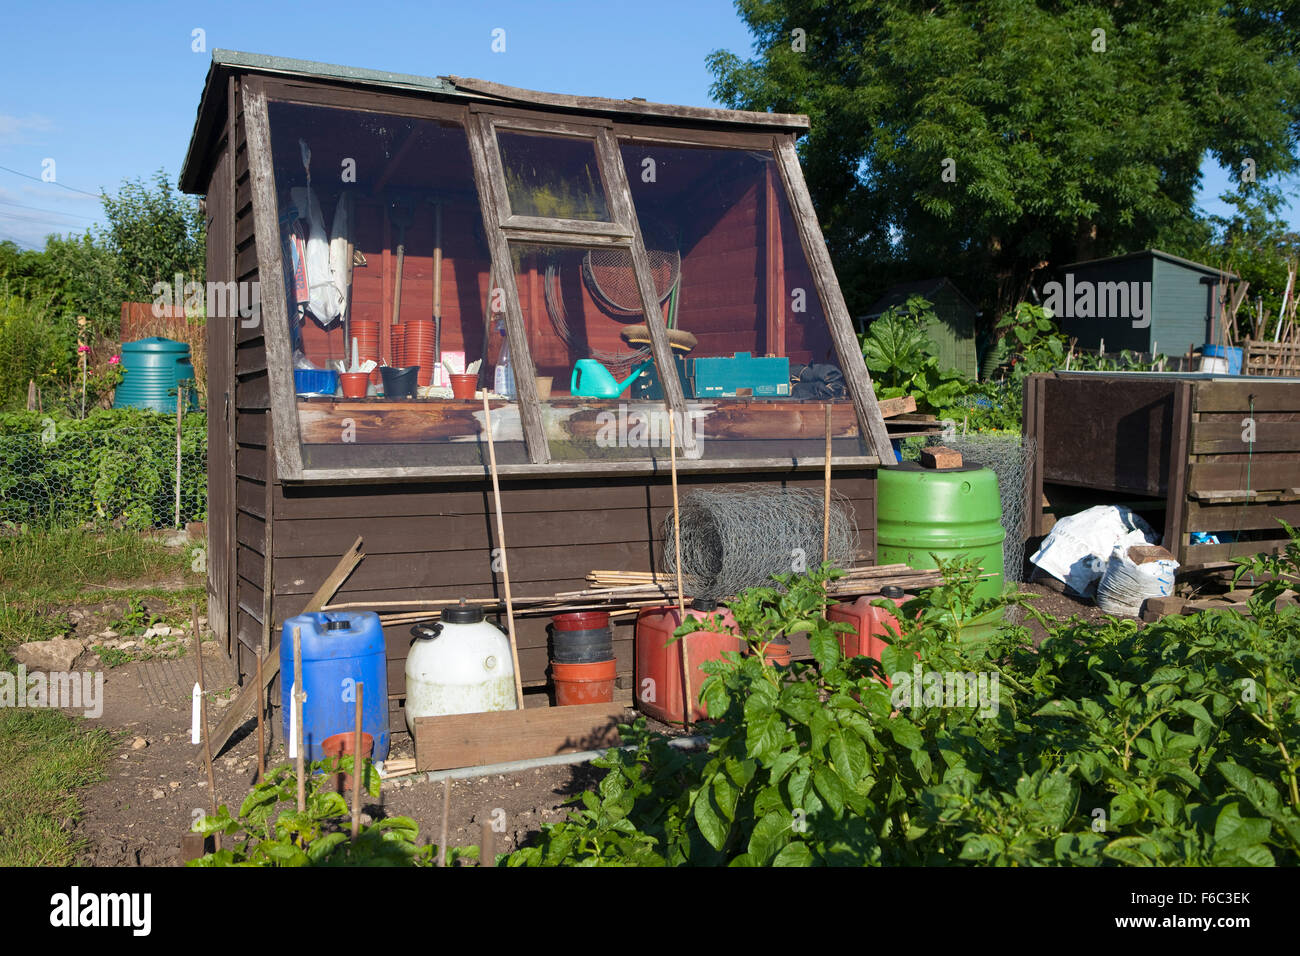 a potting shed garden shed with large open glass front area ready for using to